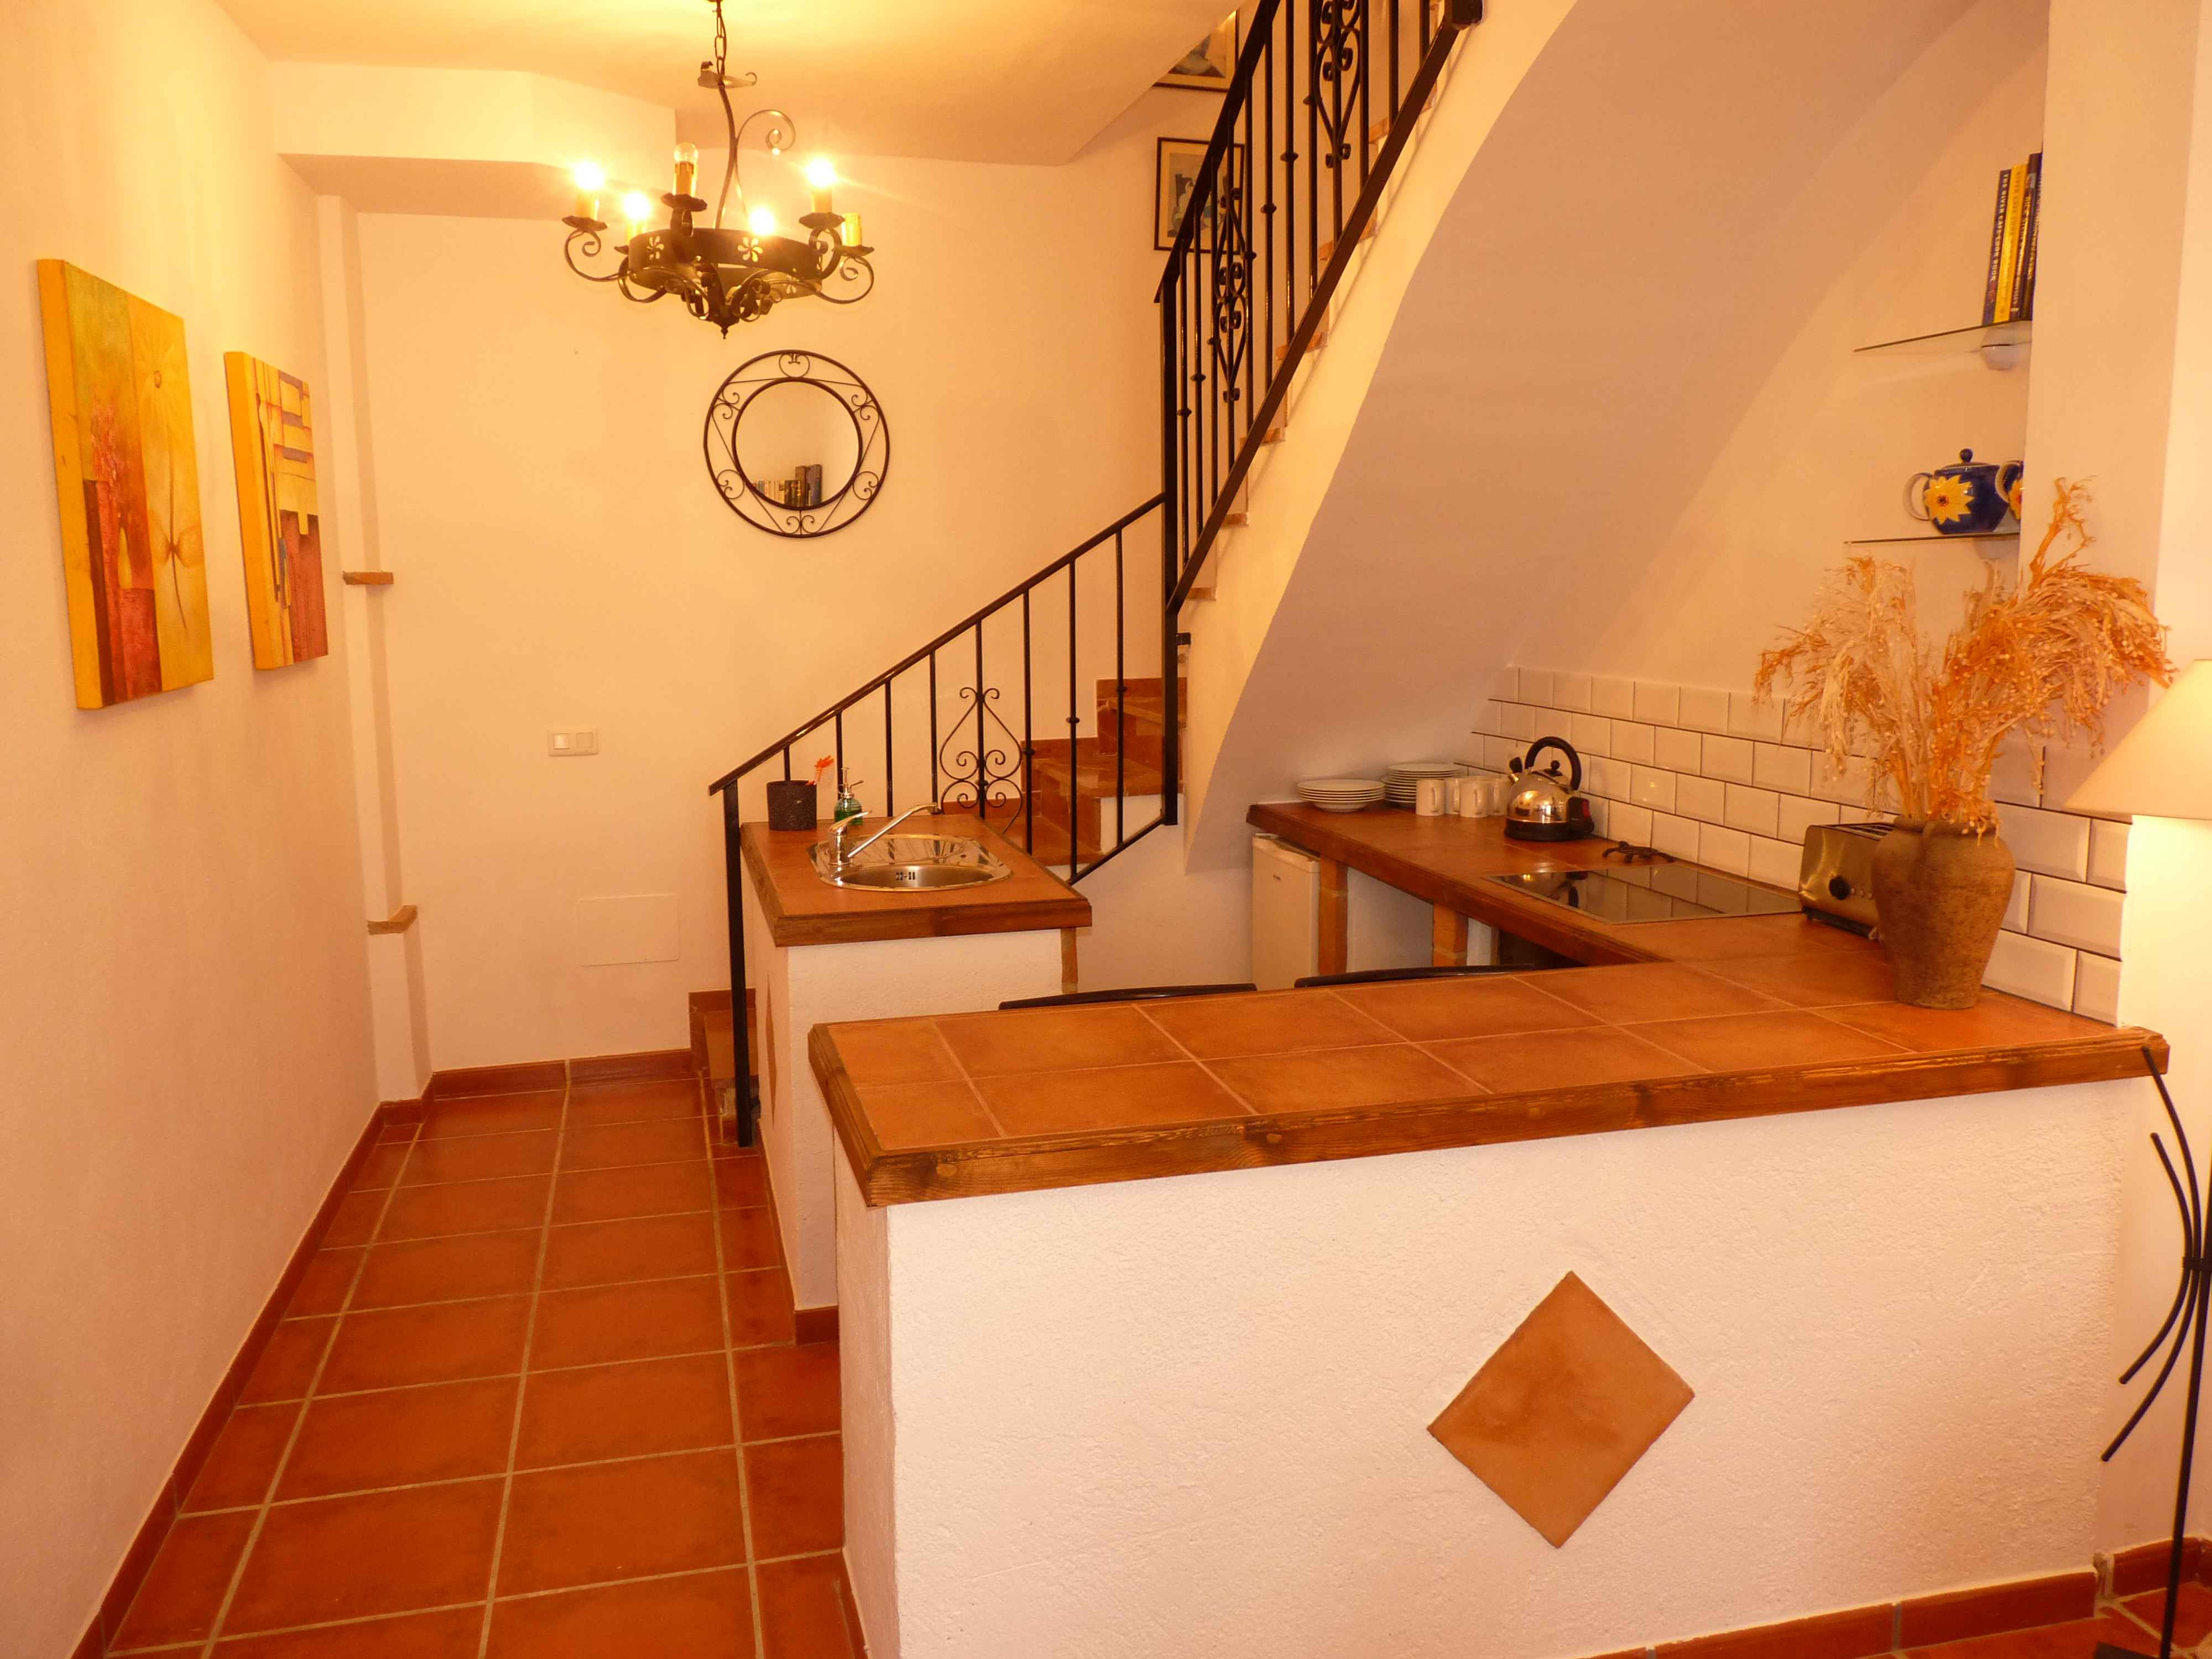 Wonderful Business Opportunity or Unique House To Live In. Antequera.properties/28/14.jpeg